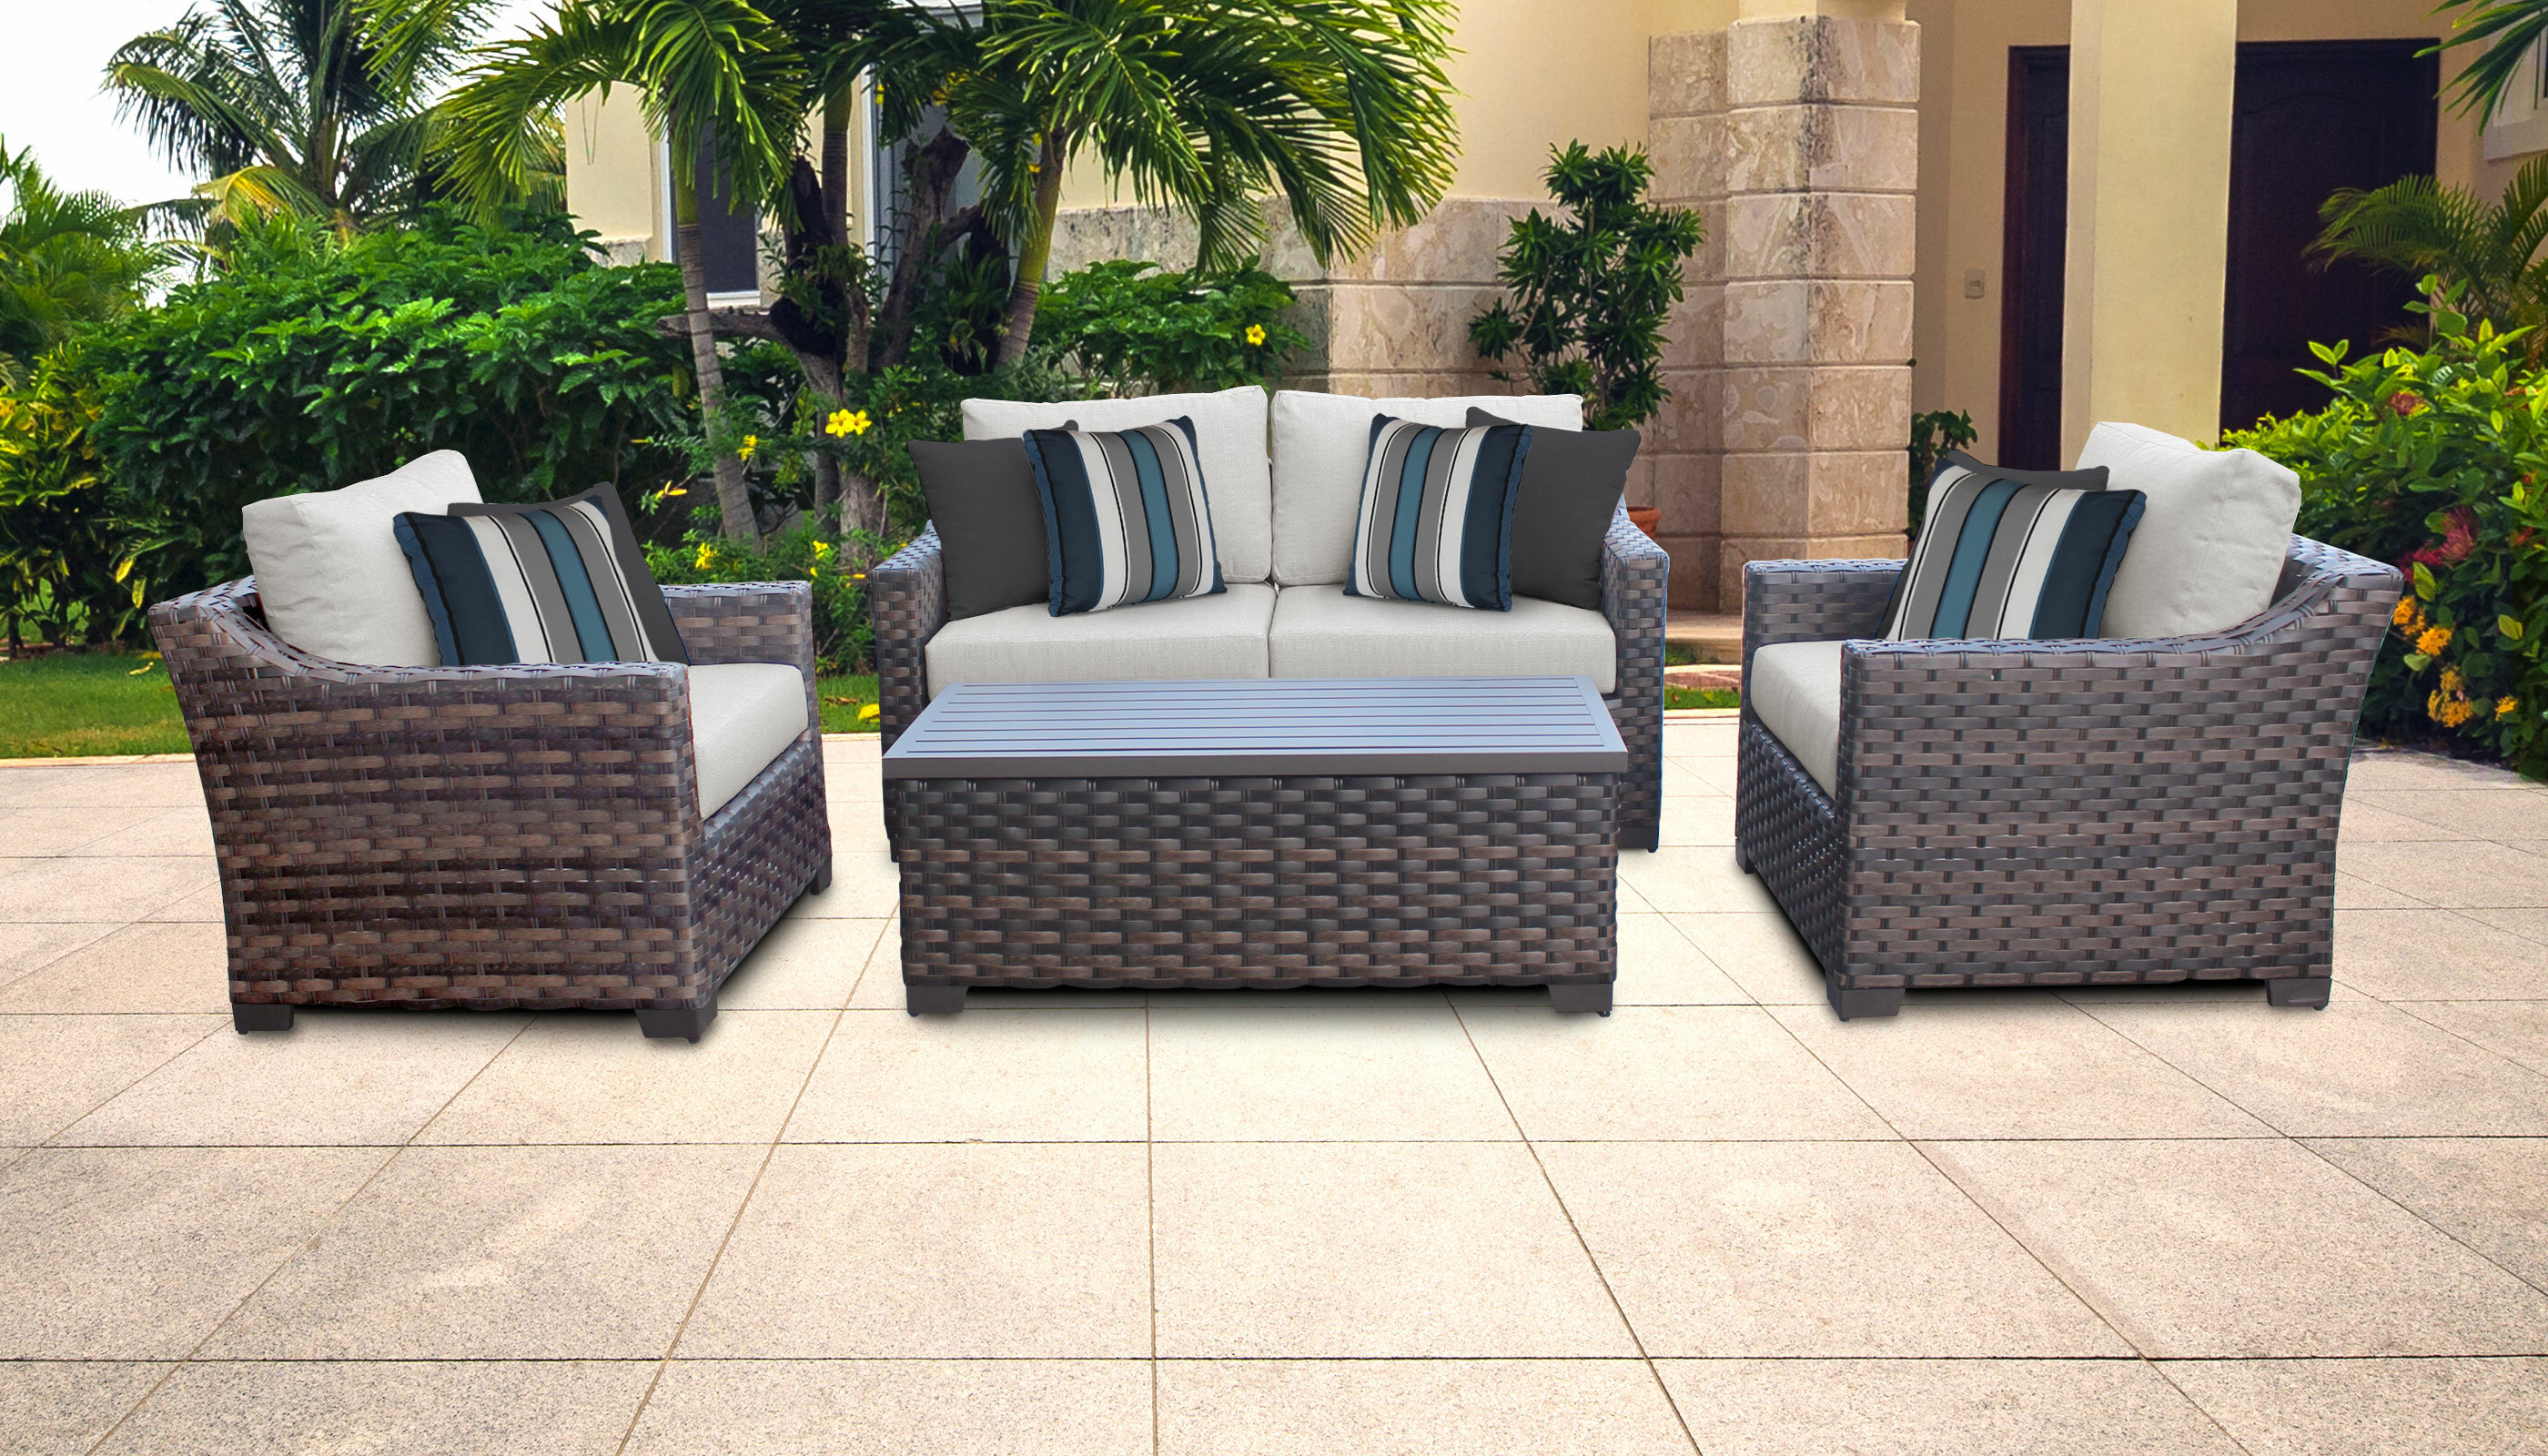 Newest Oreland Patio Sofas With Cushions Intended For Kathy Ireland Homes & Gardens River Brook 5 Piece Outdoor Wicker Patio Furniture Set 05c (View 19 of 20)